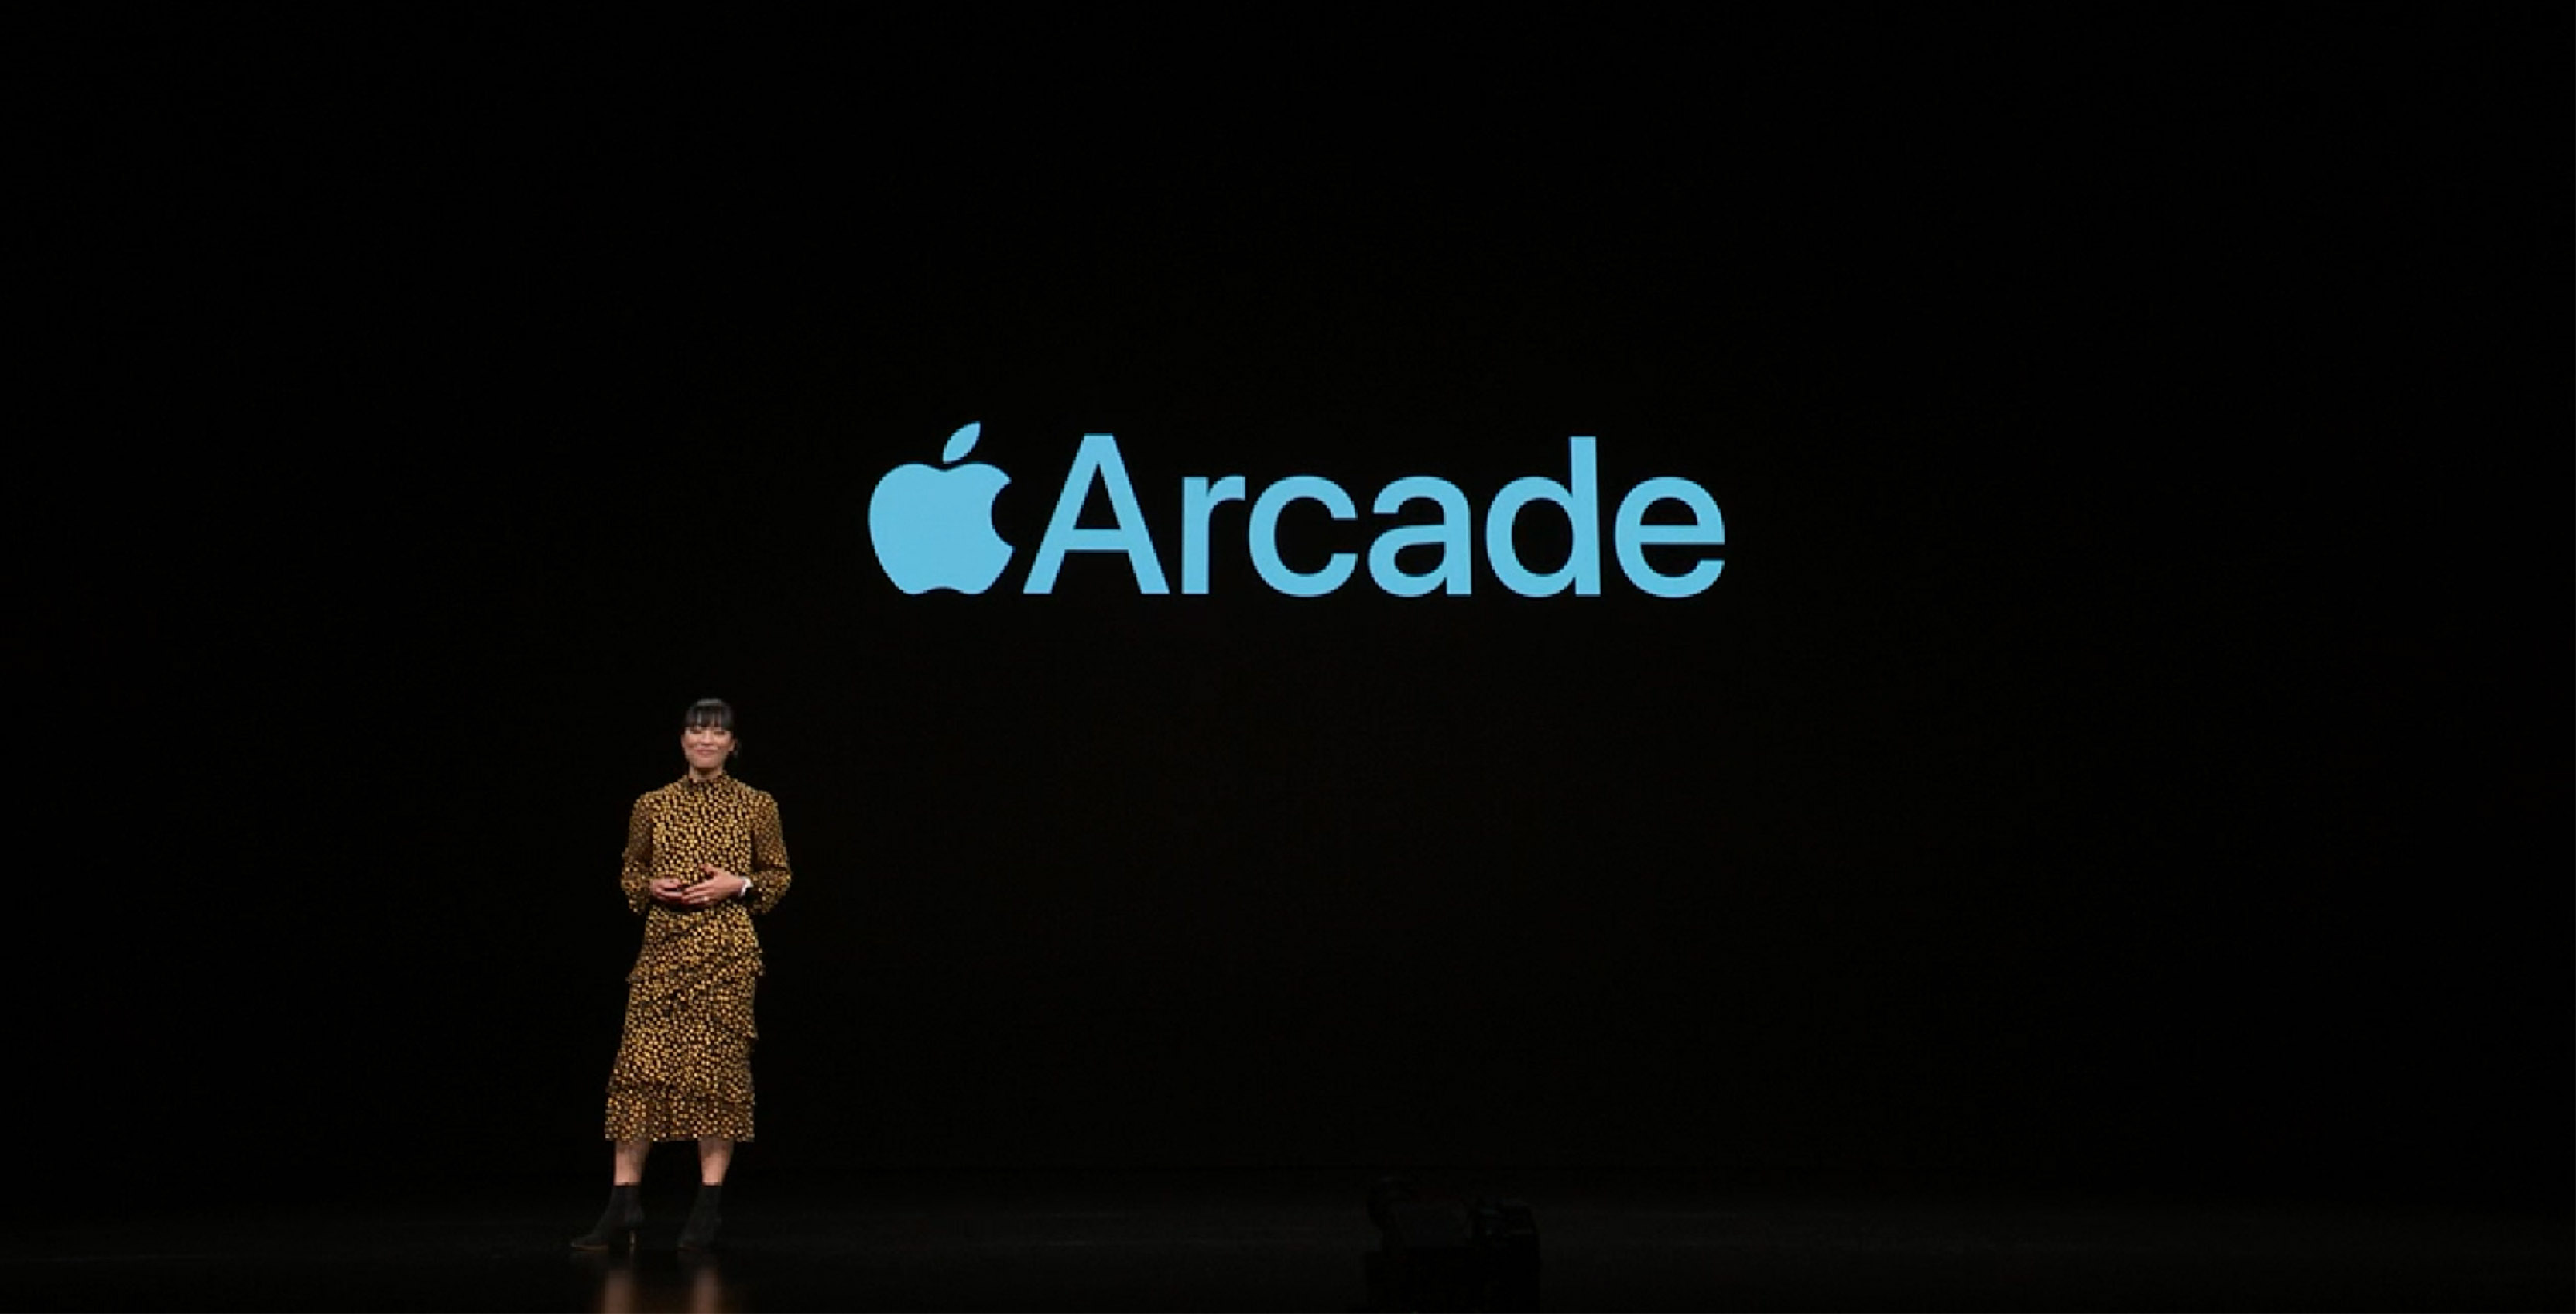 Take a look at Apple Arcade's beta with these leaked images